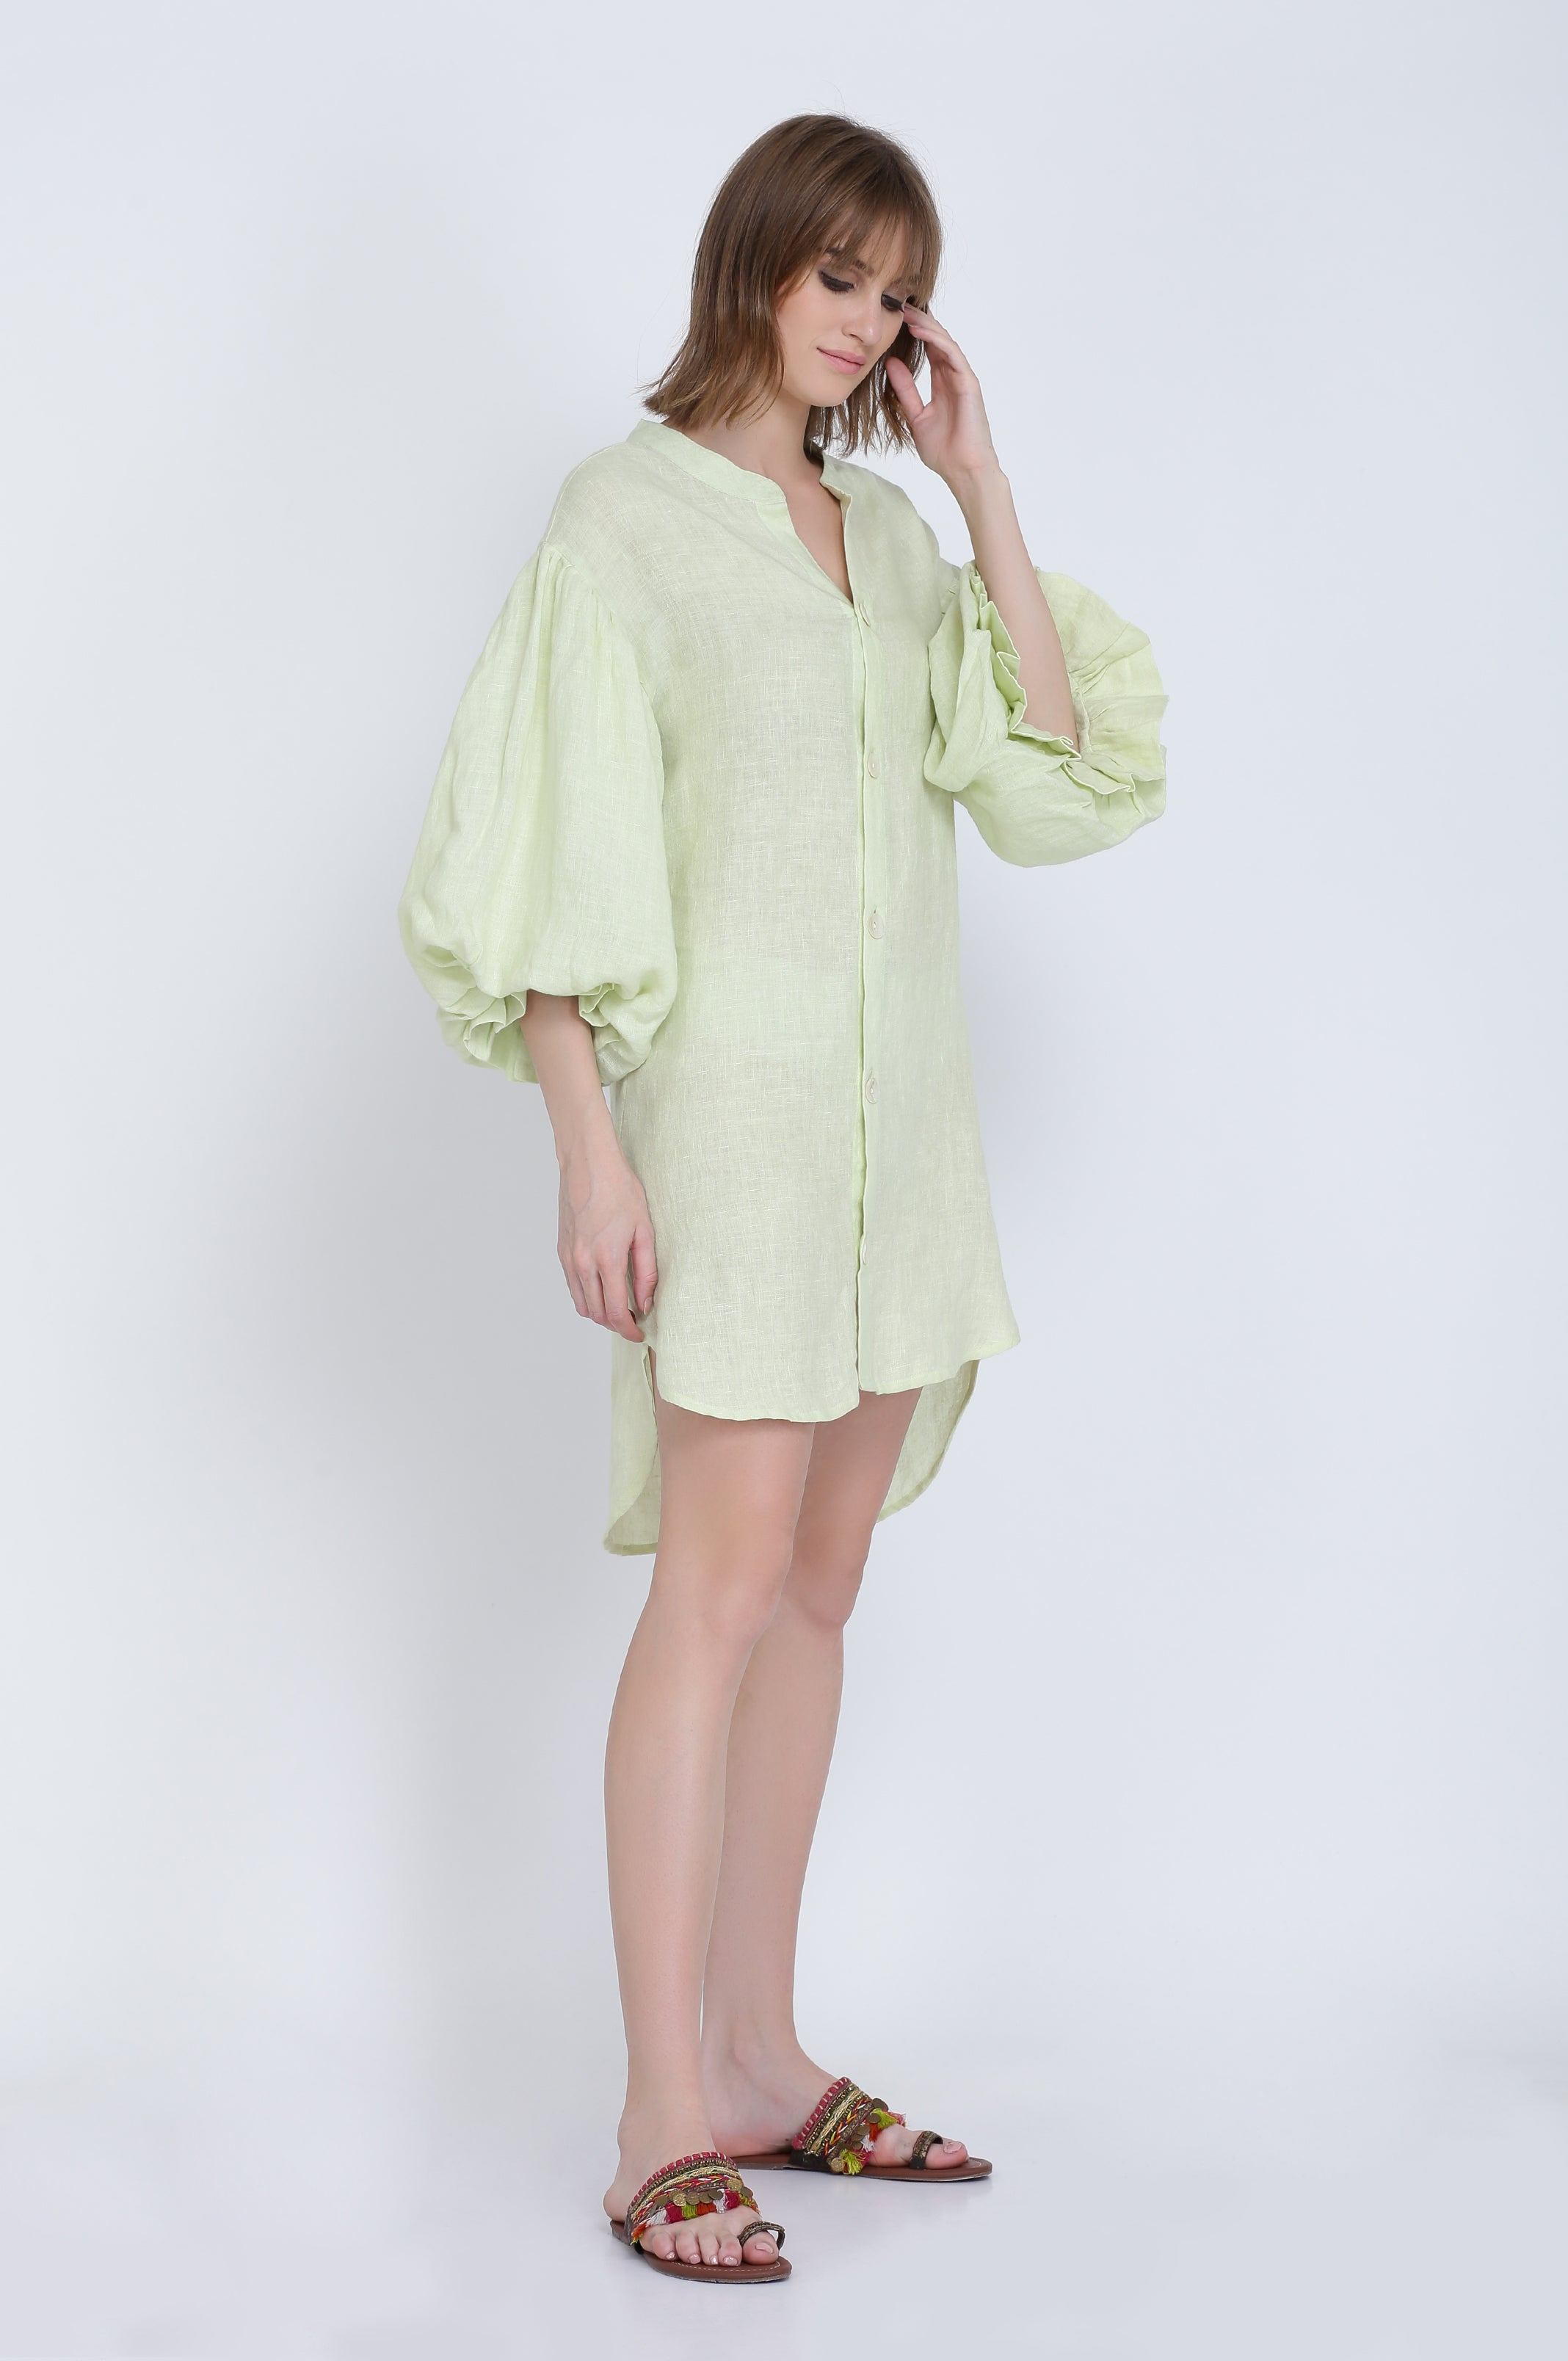 The Dewey Linen Dress